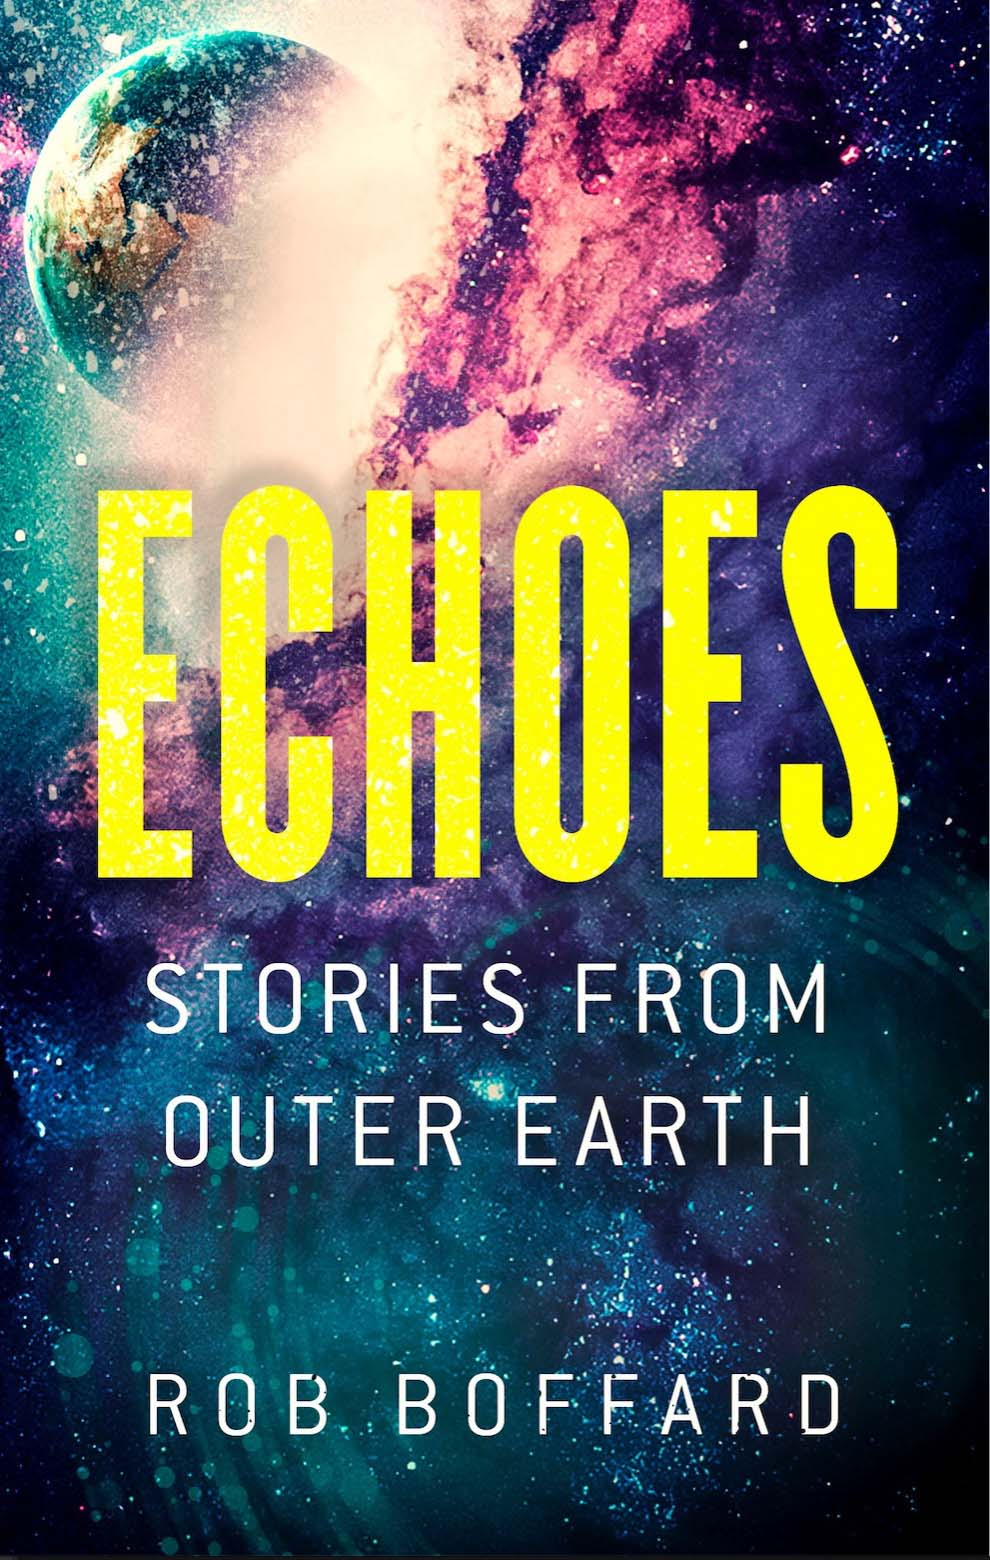 ECHOES (STORIES FROM OUTER EARTH) - Out Now - Orbit BooksRob Boffard's Outer Earth series thrilled readers with its no-holds-barred action and adrenaline, as it follows the story of Riley Hale's attempts to save both humanity's last refuge – and humanity itself. Yet Riley has friends helping her in her efforts, and their backstories are every bit as messy and intricate as her own.This new collection, comprising four action-packed short stories, reveals the secret histories of Riley's closest friends and allies, as they try to make their way in the dangerous, vibrant world of Outer Earth.Find Out More | Buy It!